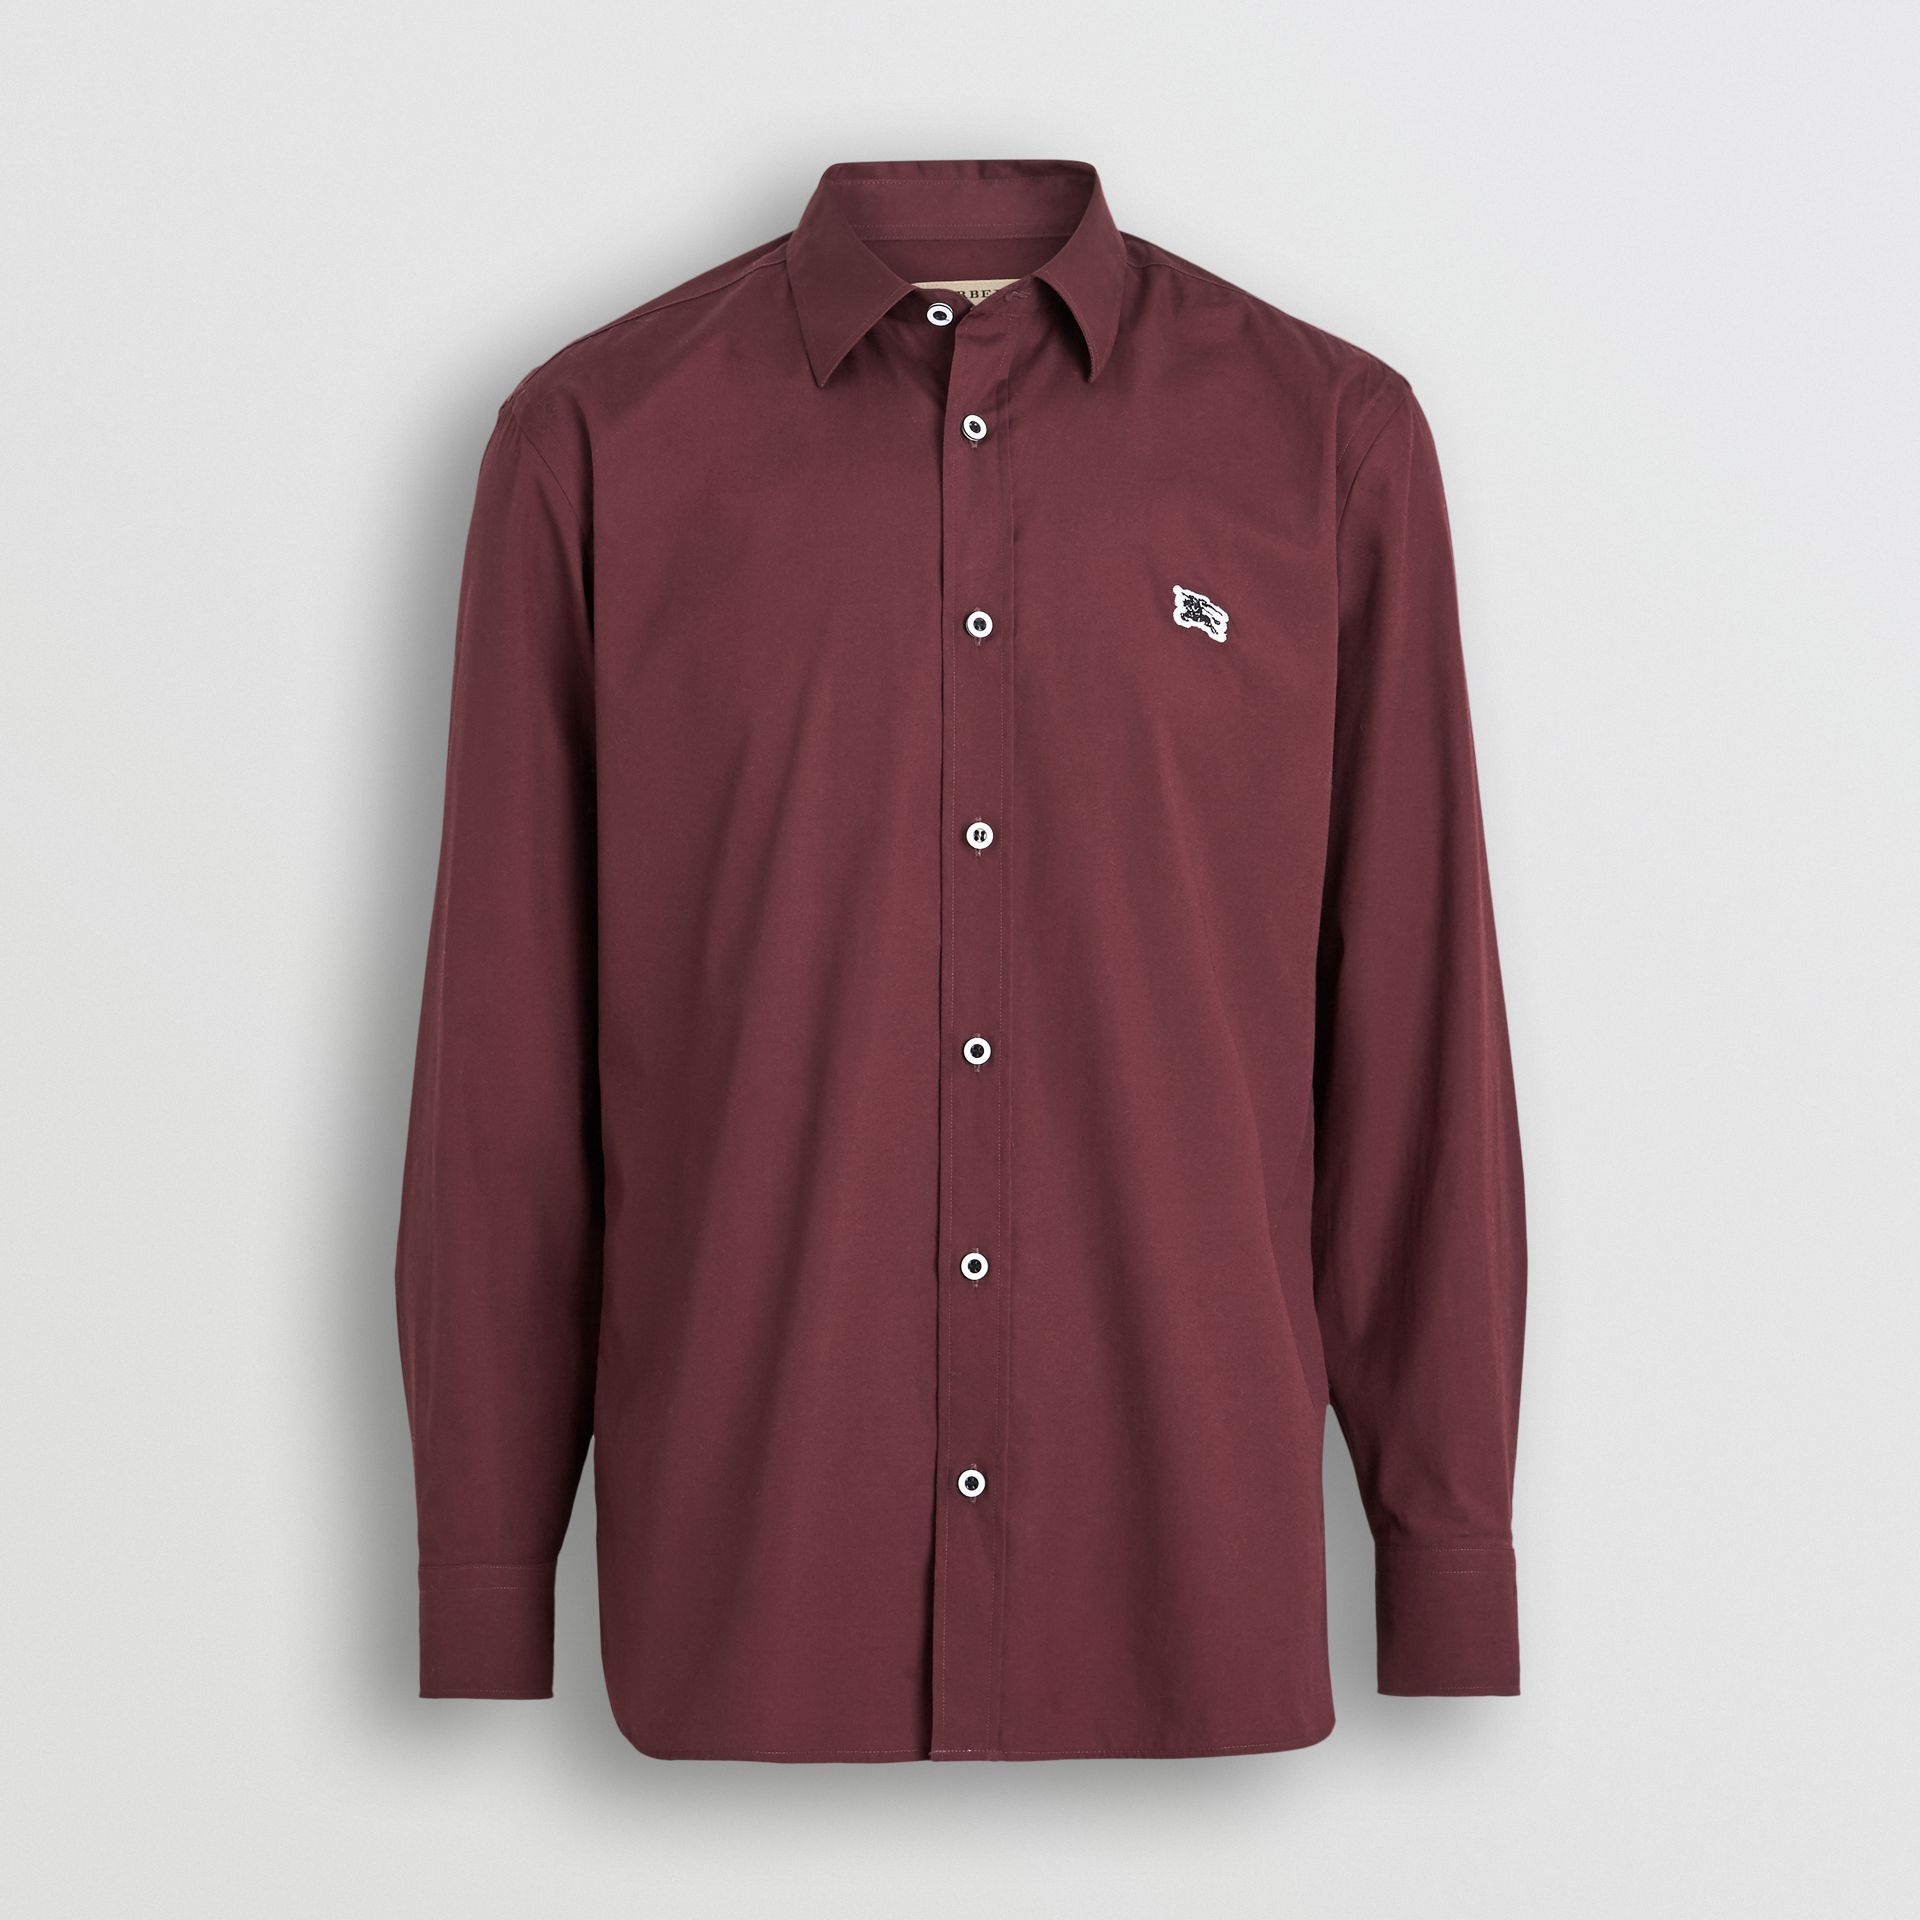 Contrast Button Stretch Cotton Shirt in Oxblood - Men | Burberry Canada - gallery image 3